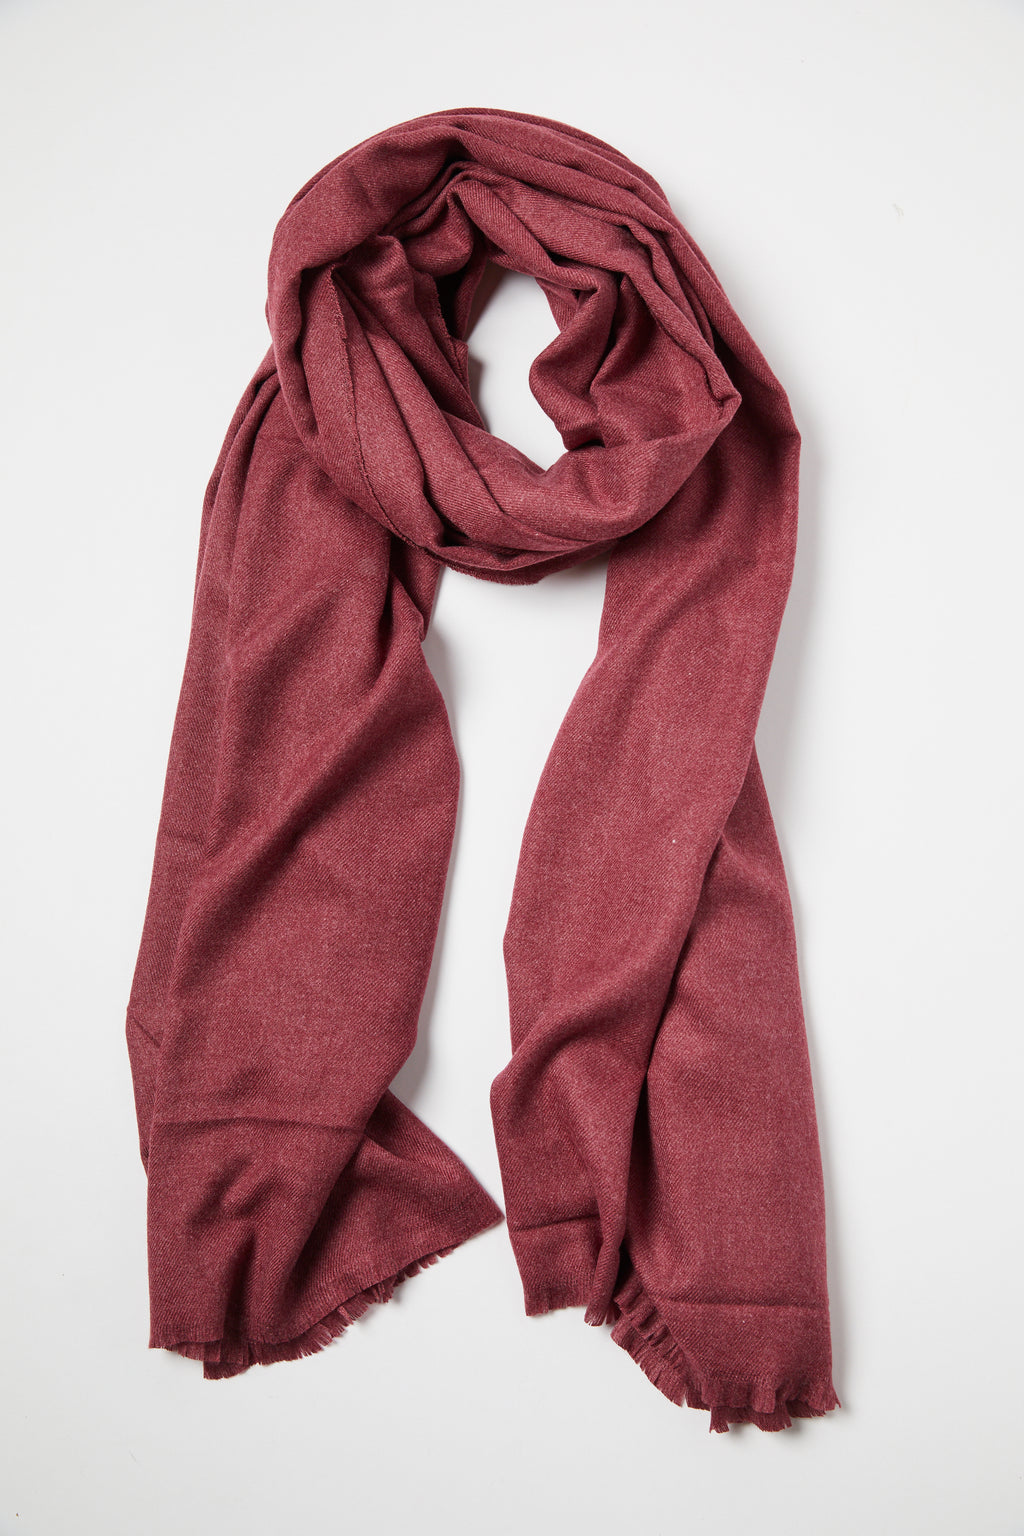 Burgundy Oversize Travel Wrap Scarf - picnic-sf